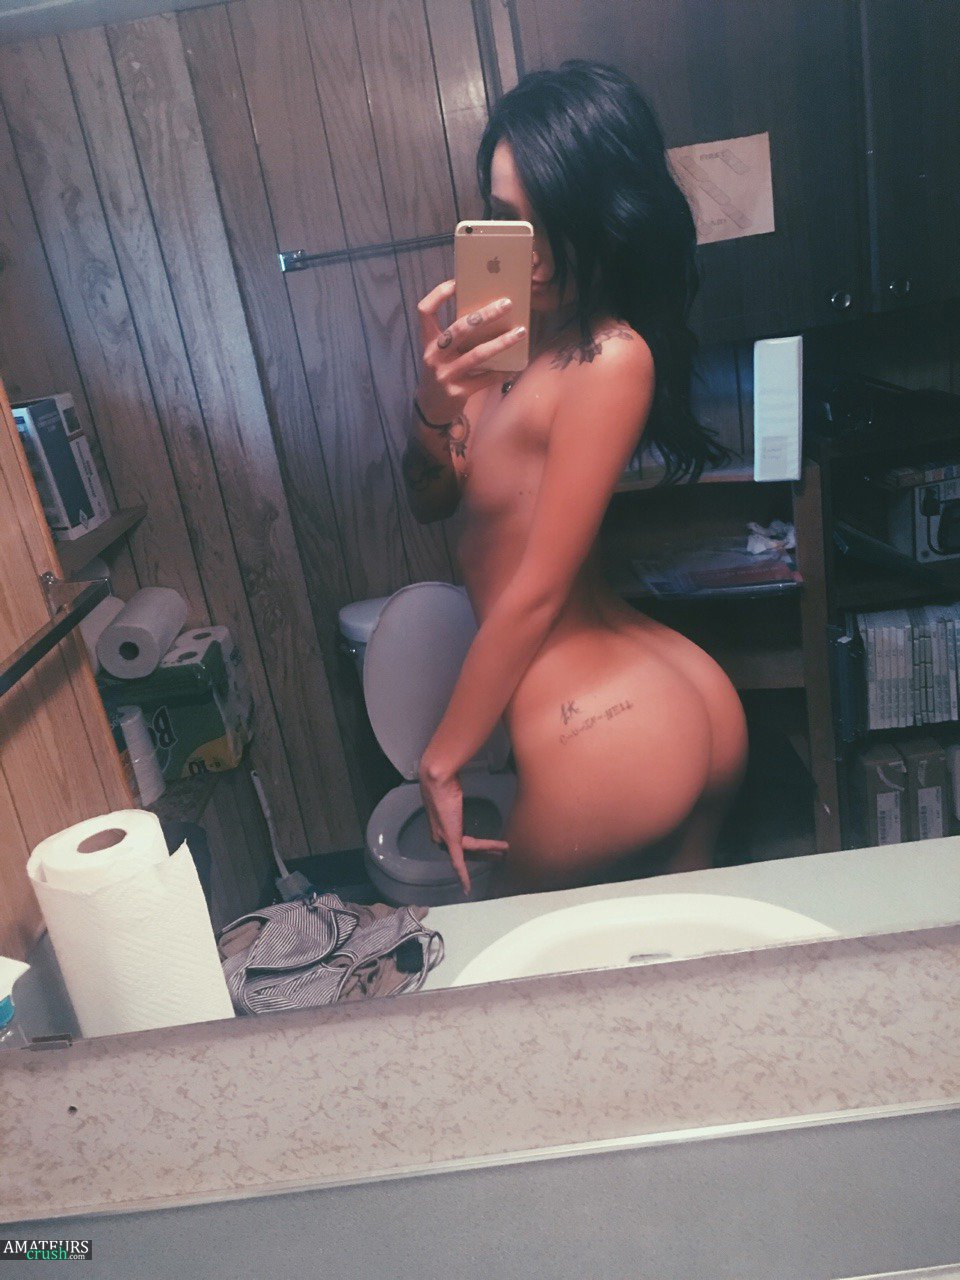 amateur ebony ass naked self shot tumblr